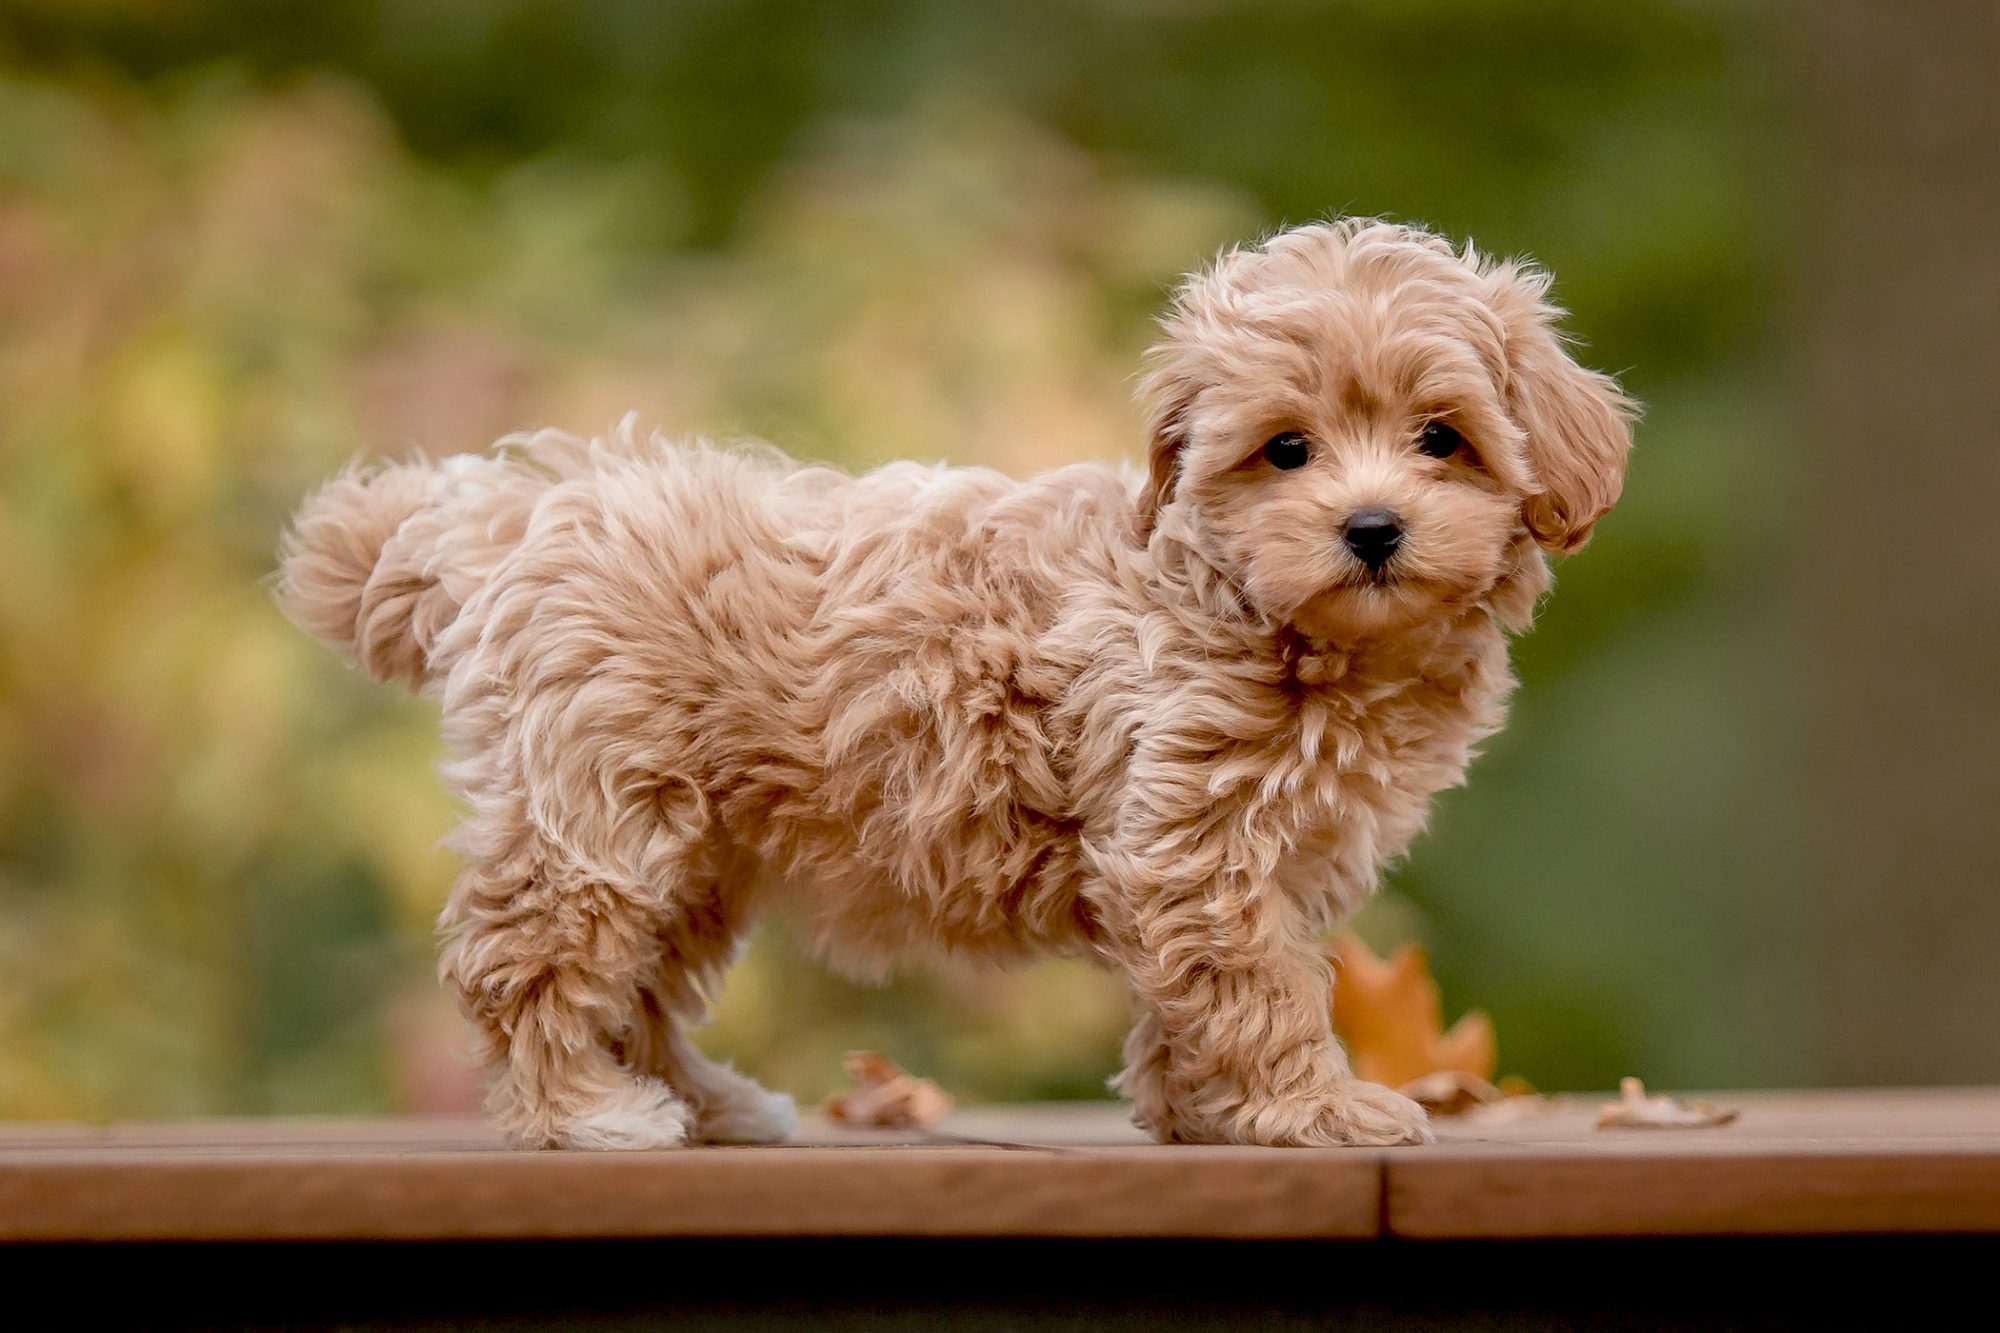 Reddish blonde maltipoo puppy stands sideways on table outdoors